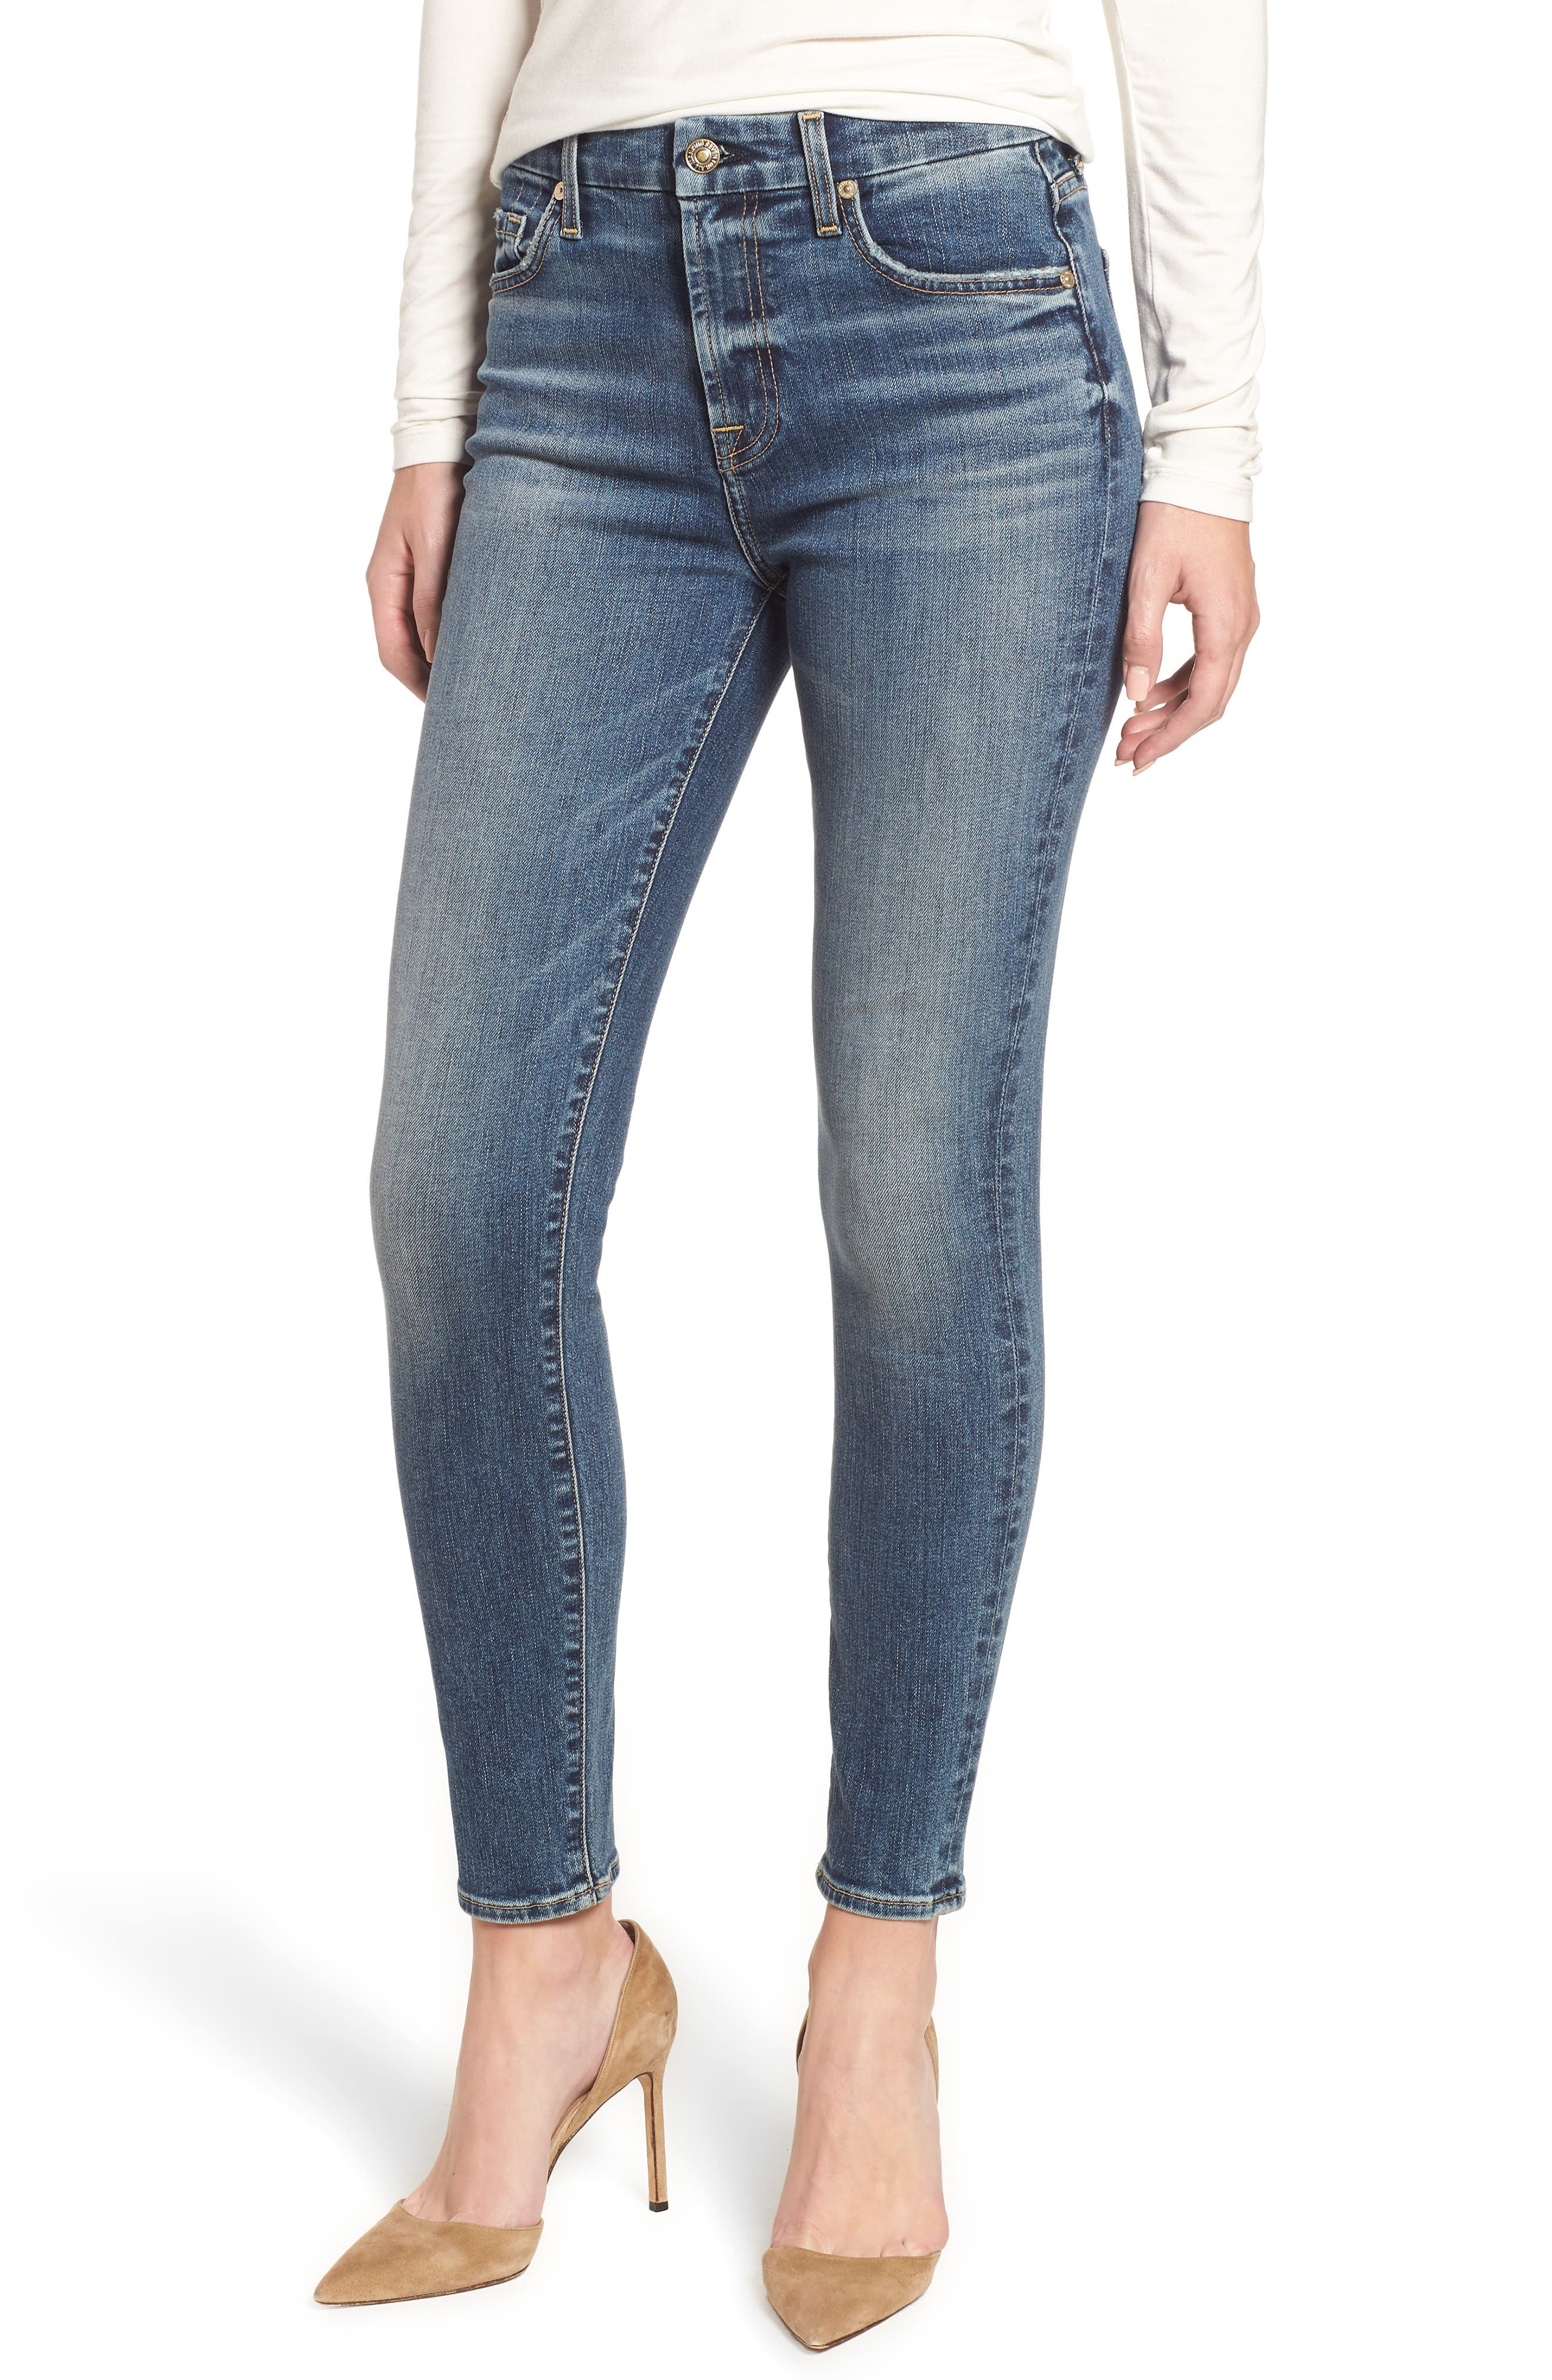 7 FOR ALL MANKIND<SUP>®</SUP>, The High Waist Ankle Skinny Jeans, Main thumbnail 1, color, 400